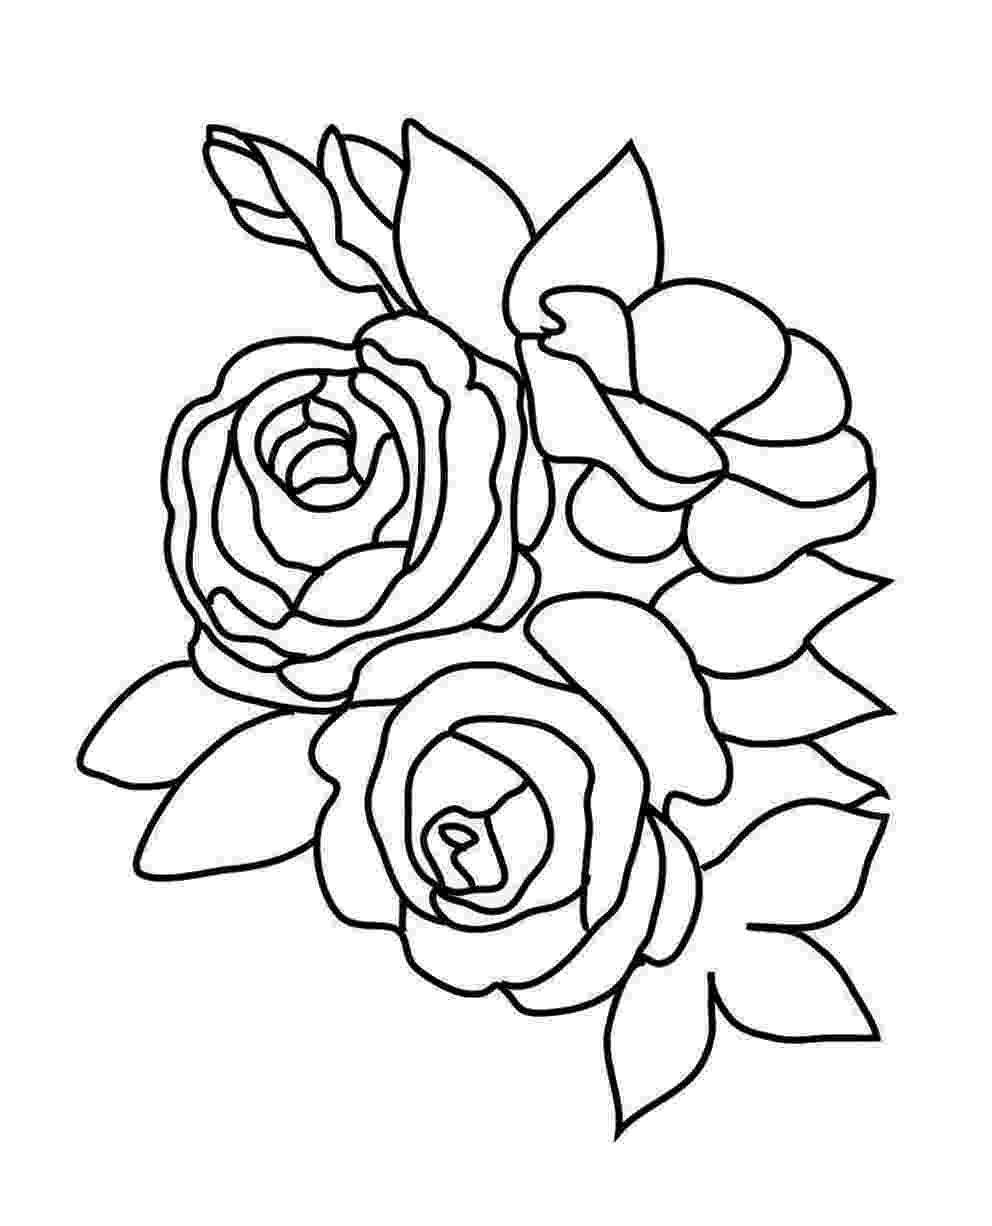 coloring roses free printable roses coloring pages for kids roses coloring